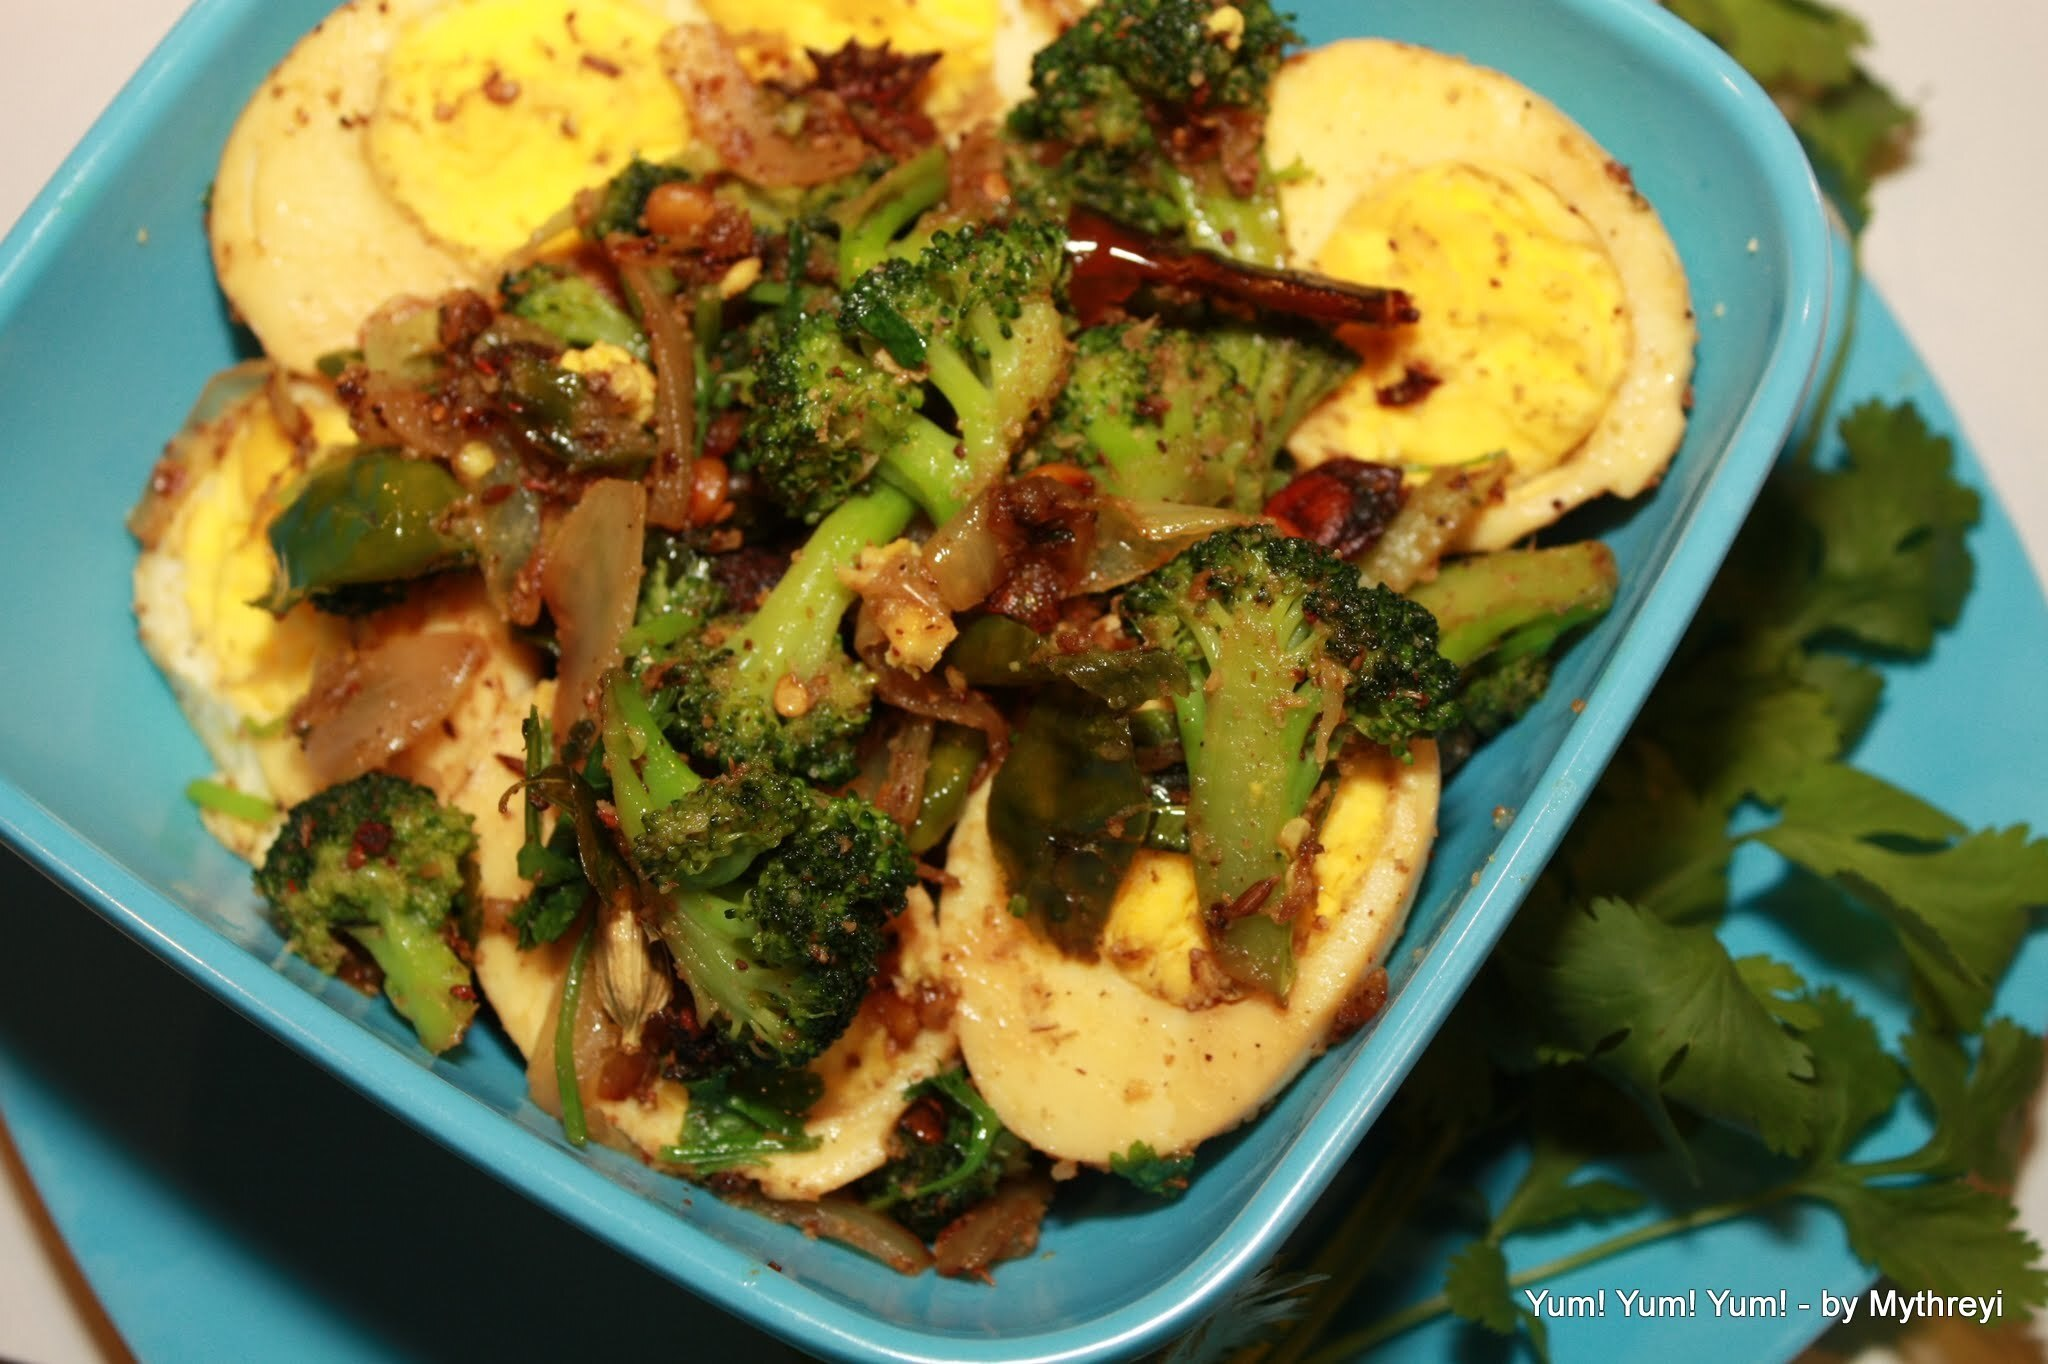 Broccoli and Boiled Egg Stir Fry